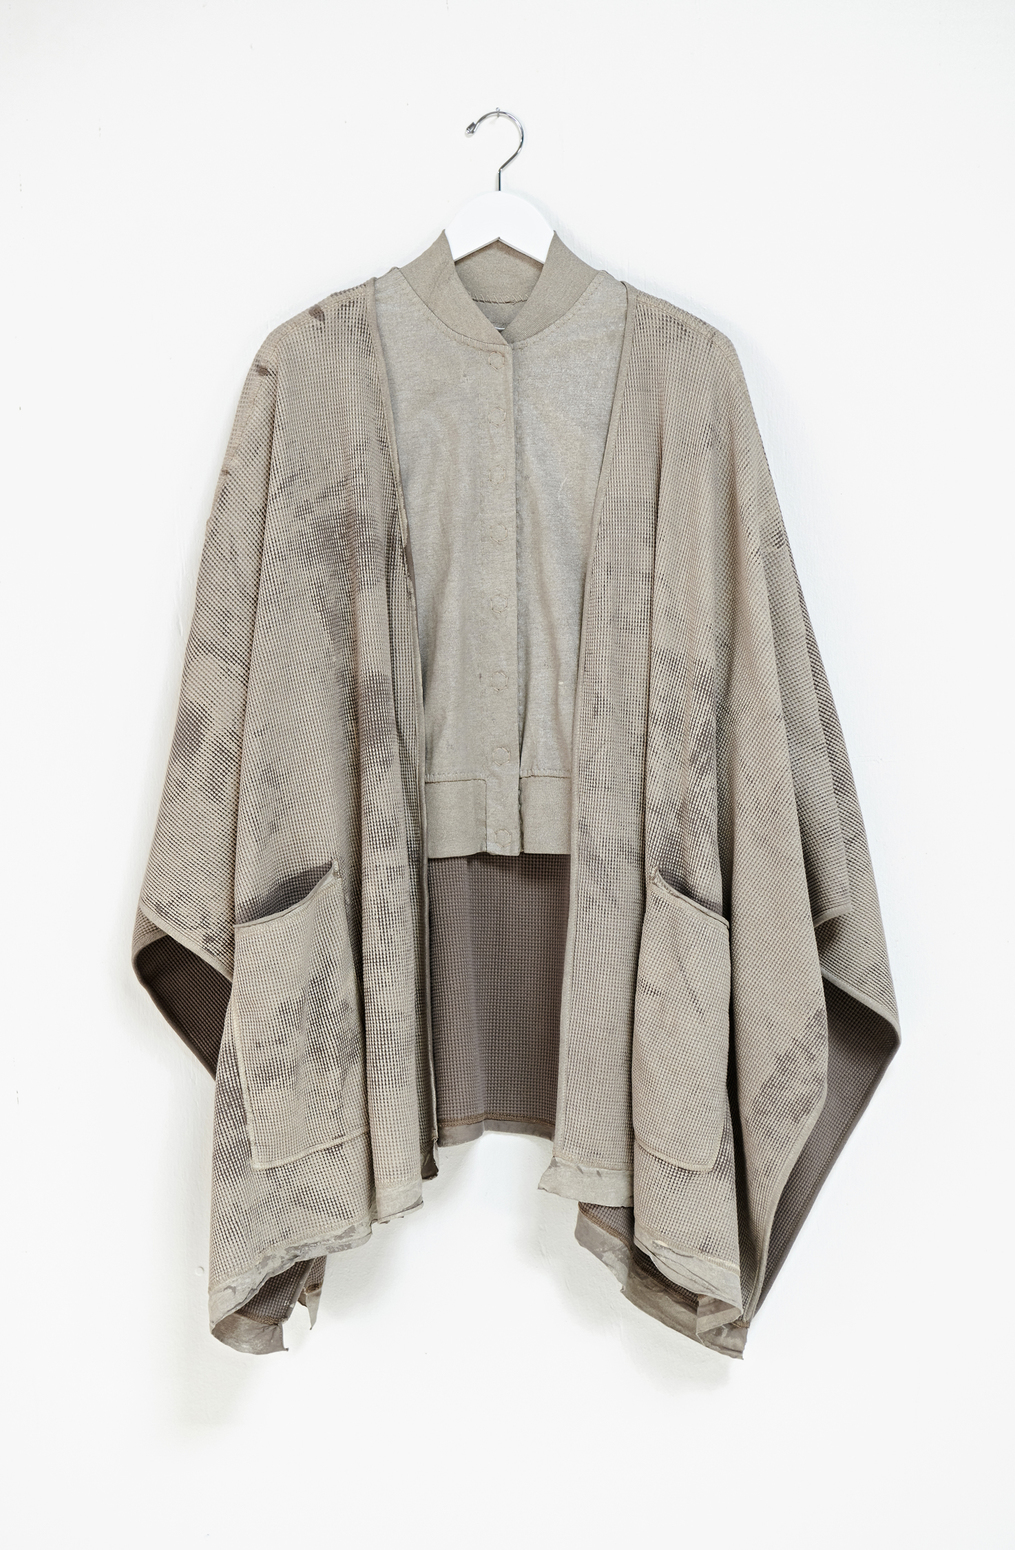 The gilded wrap   kimono wrap   paint rolled   white gold   ac 107   a 917  a 955   september 2019   robert rausch2312